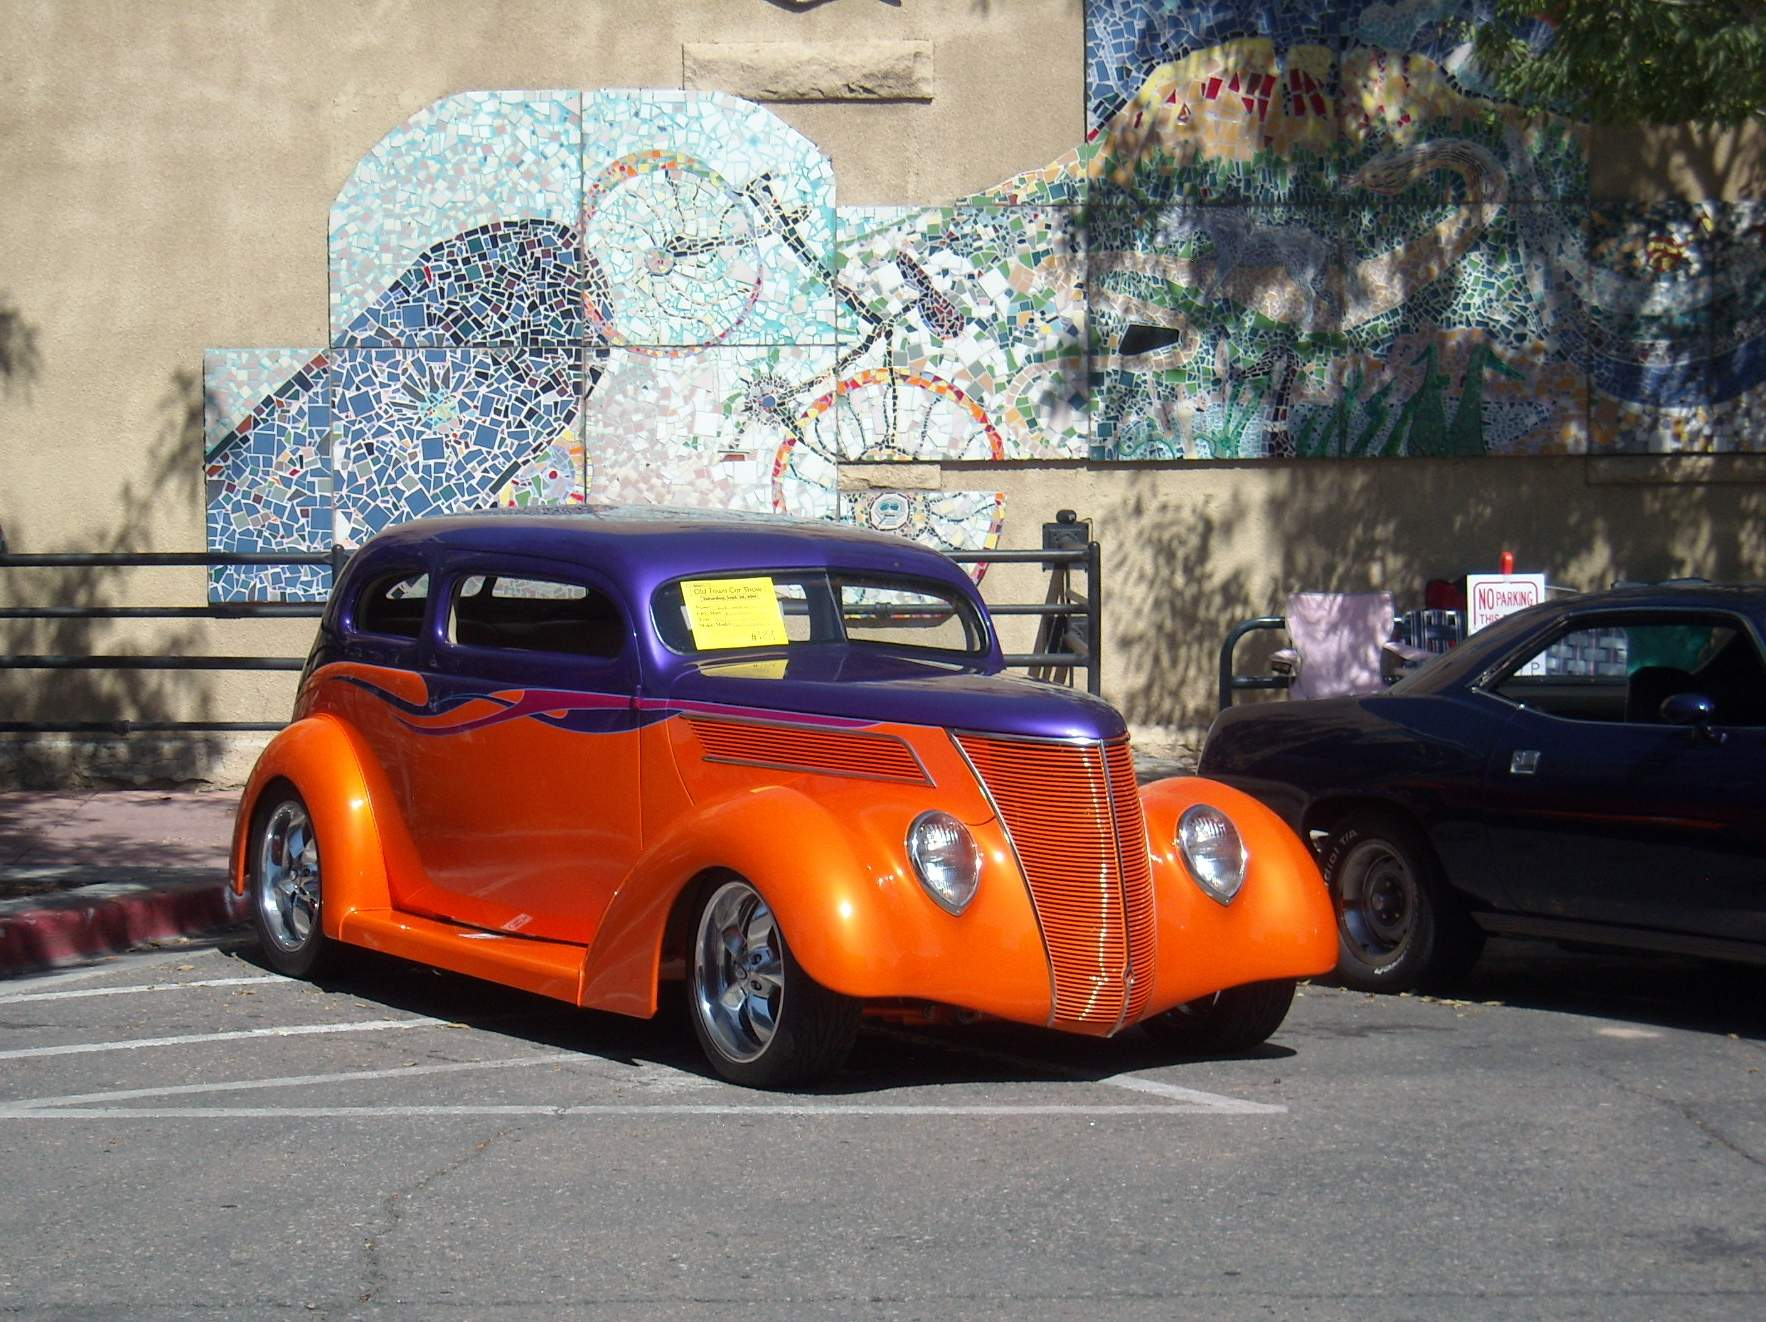 Car Show 2015 >> Old Town Car Show, Fort Collins